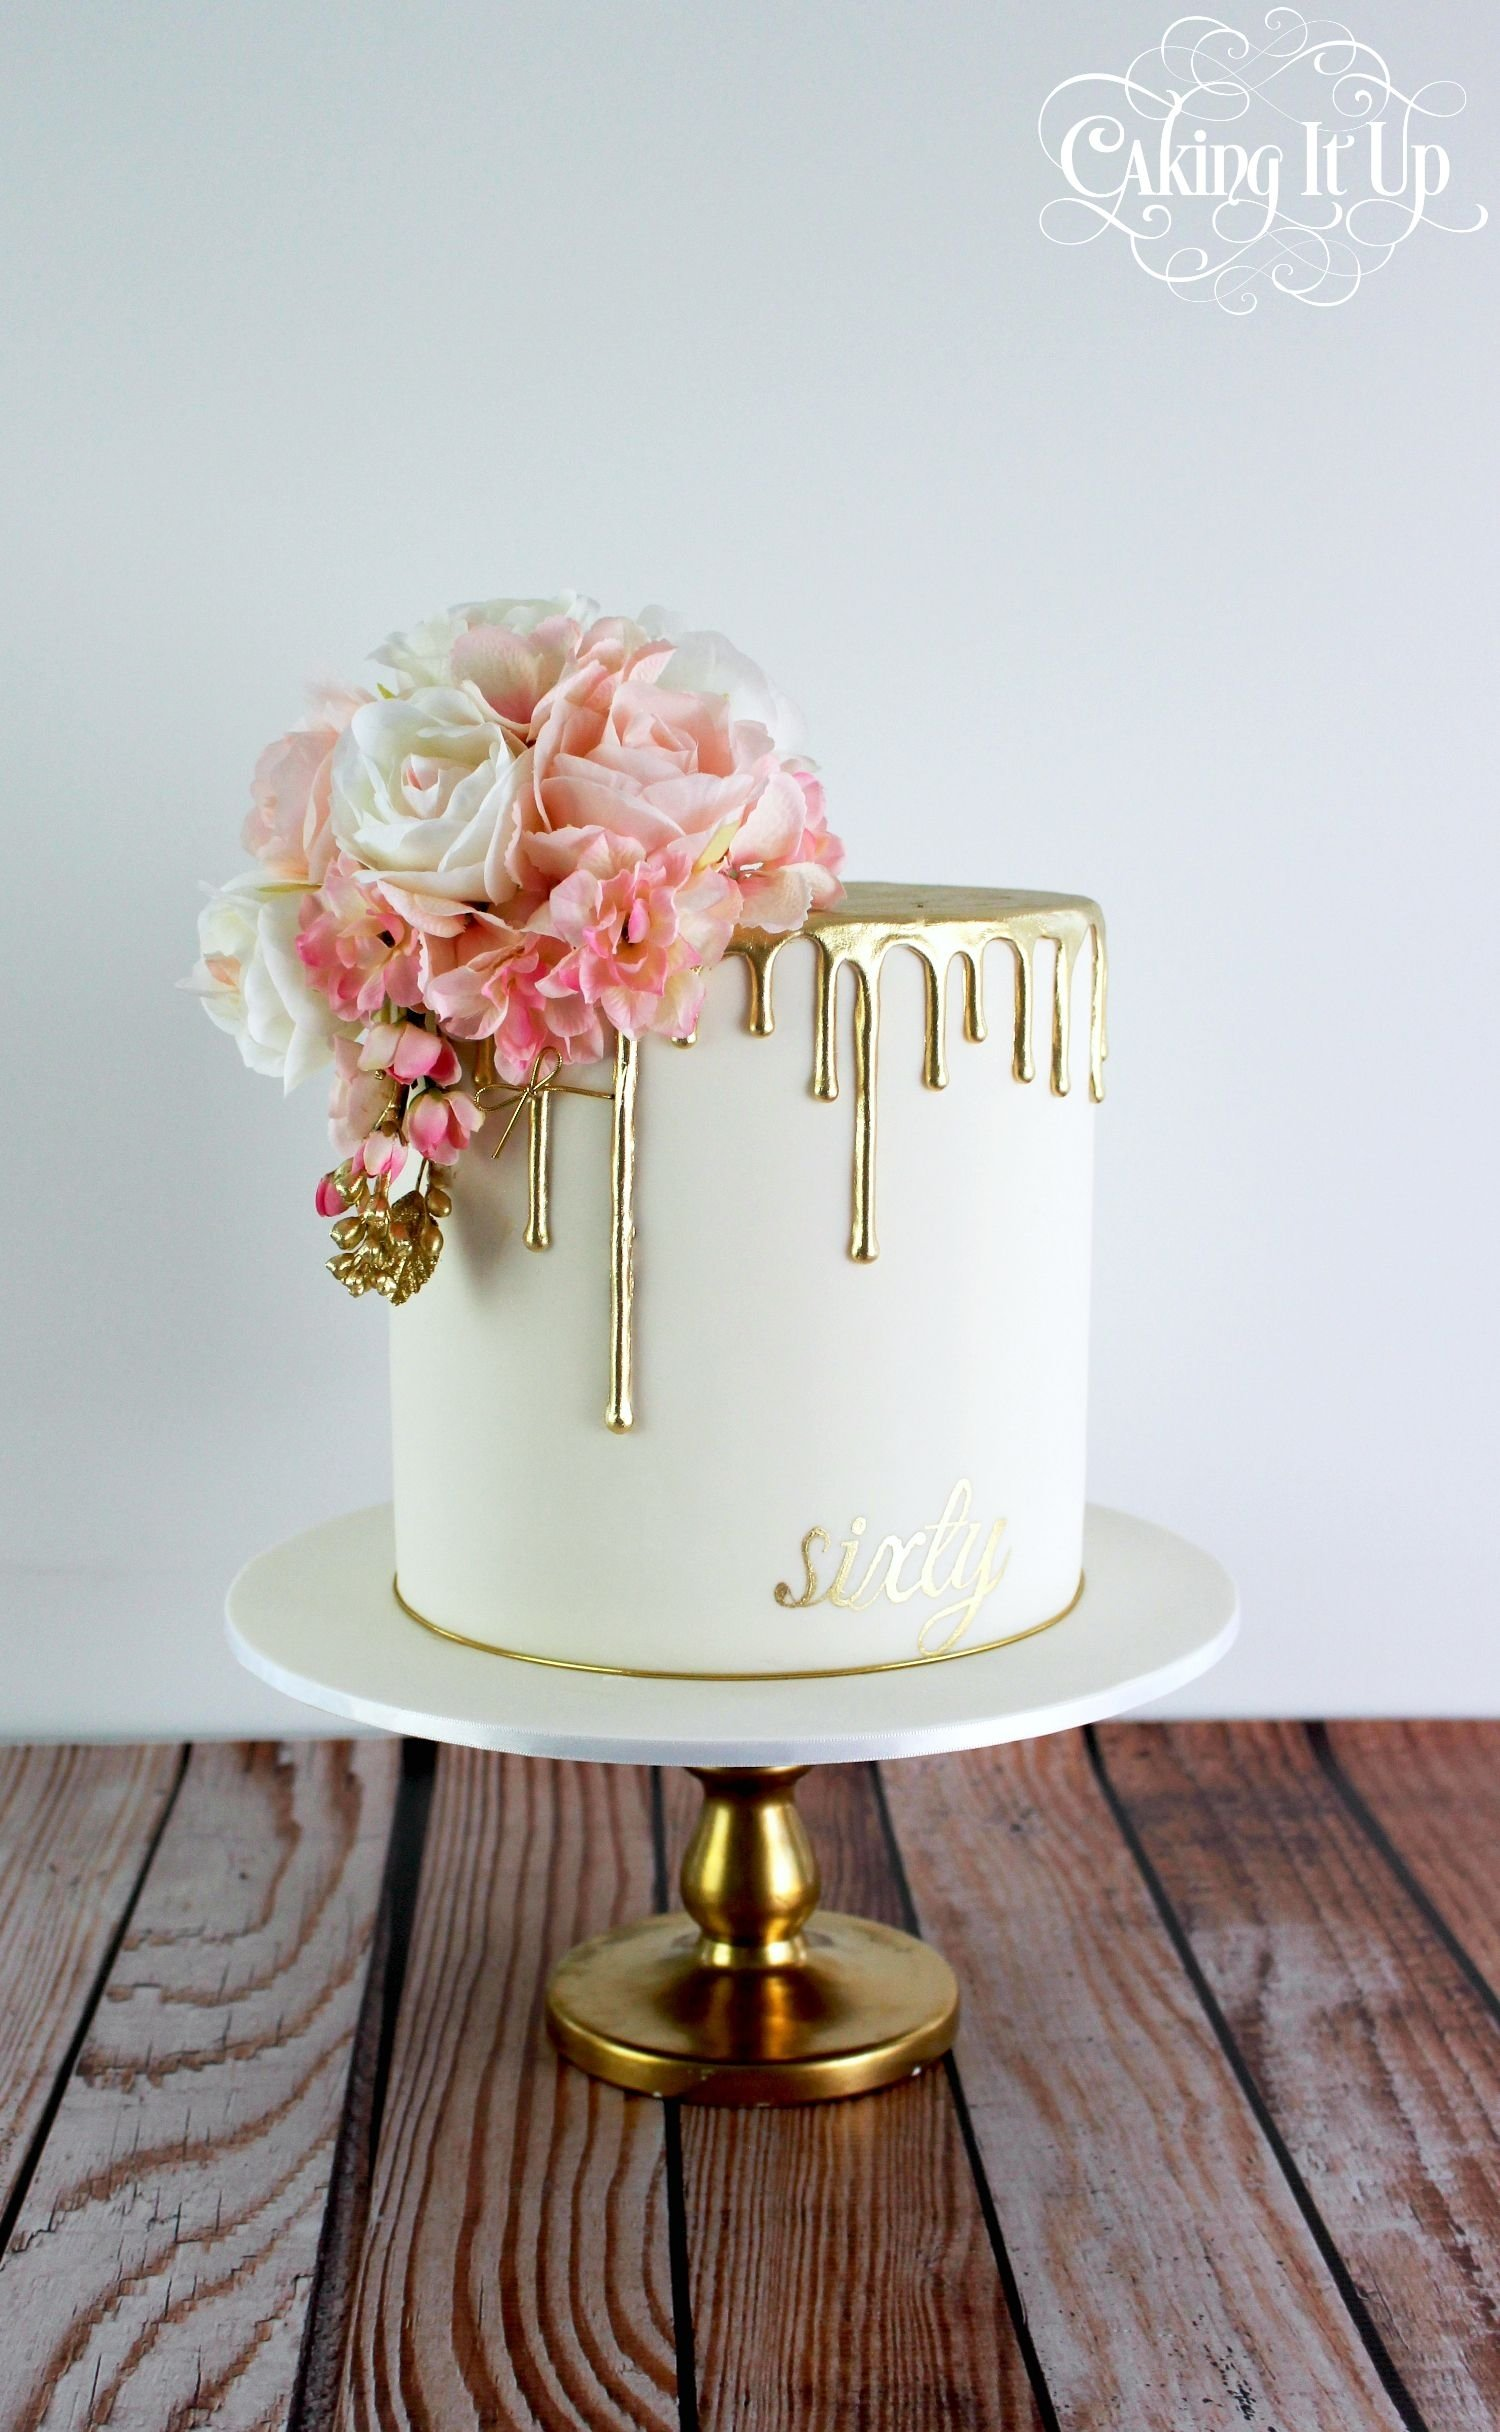 10 Awesome Birthday Cake Ideas For Women classy and elegant golden drizzle 60th birthday cake with a pretty 2020